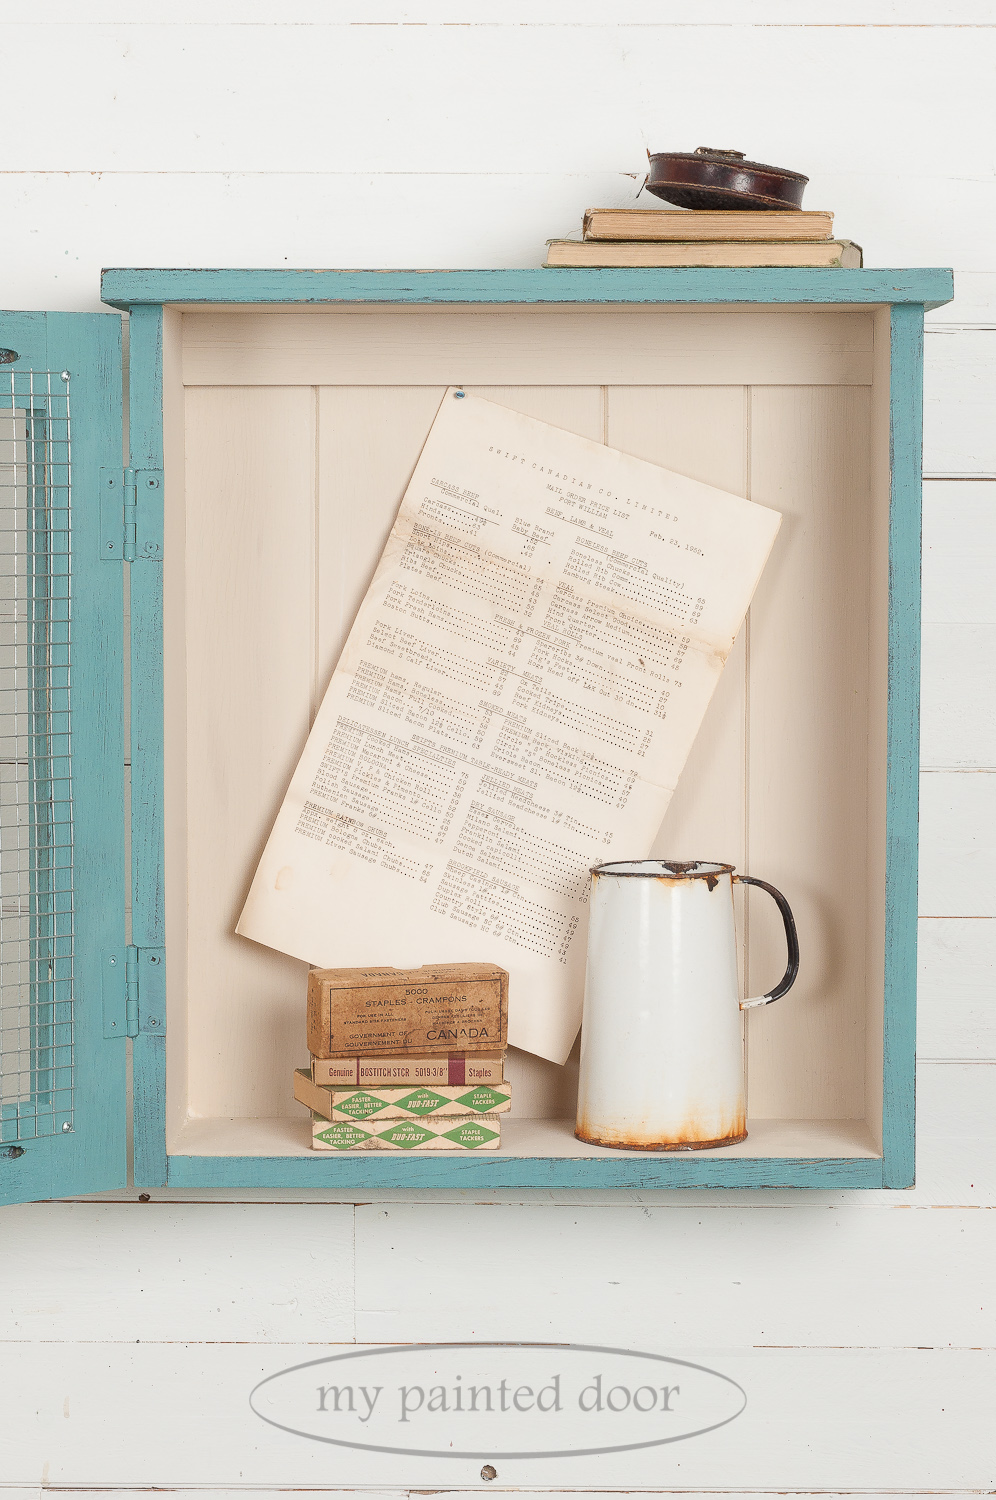 Learn how to paint furniture - Curiosity cabinet painted with Homestead House Milk Paint in the colours Niagara Green and Champlain.